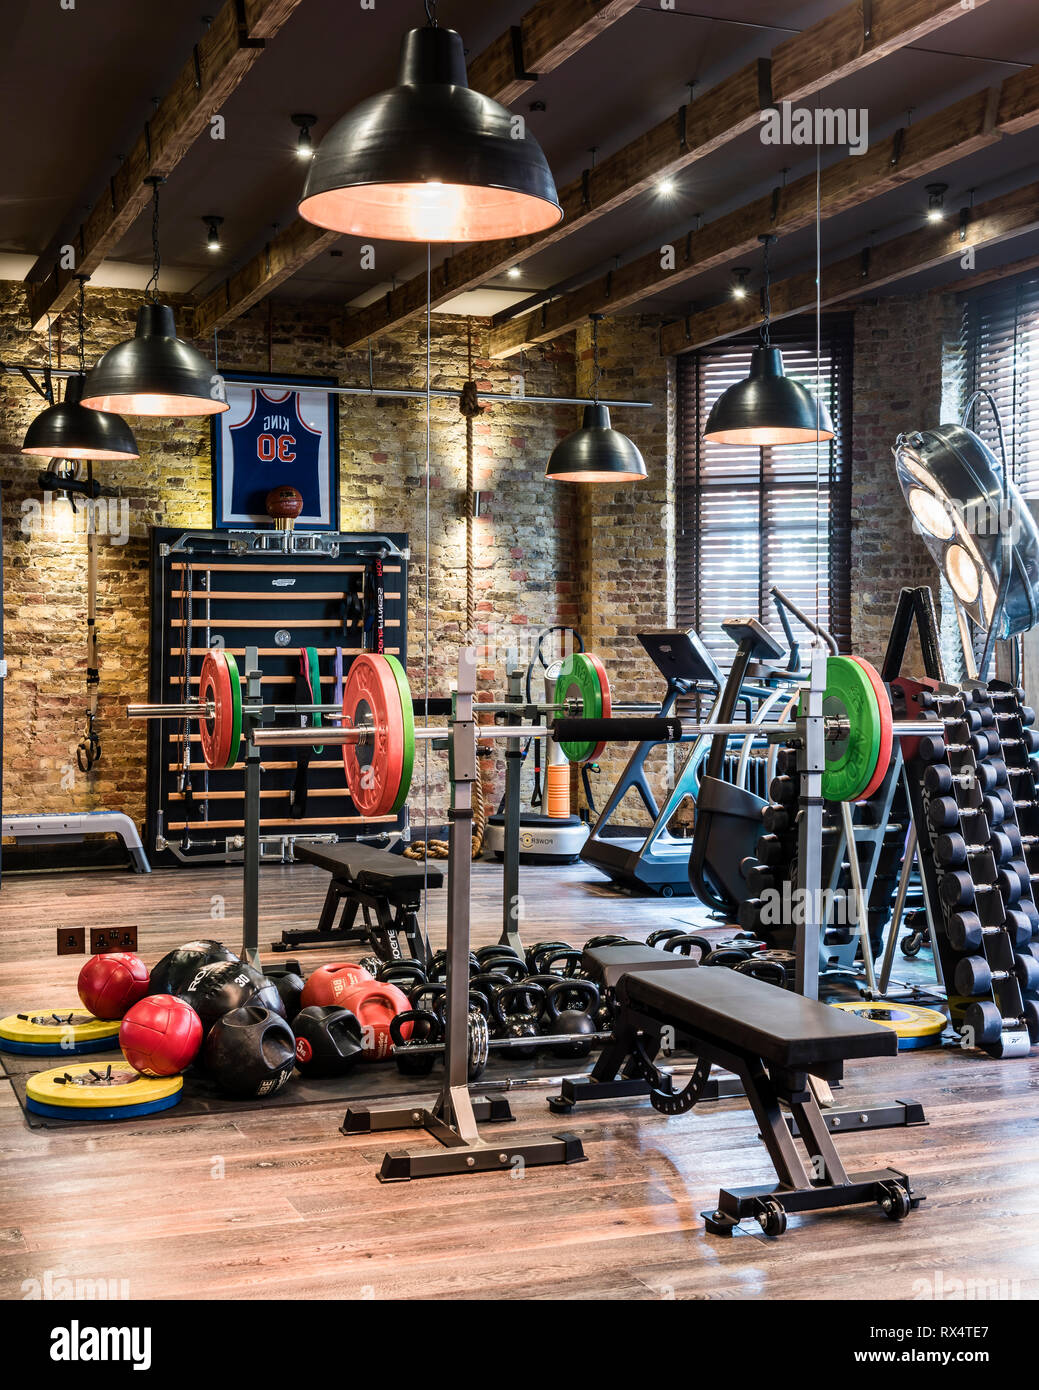 Exercise equipment in rustic gym - Stock Image